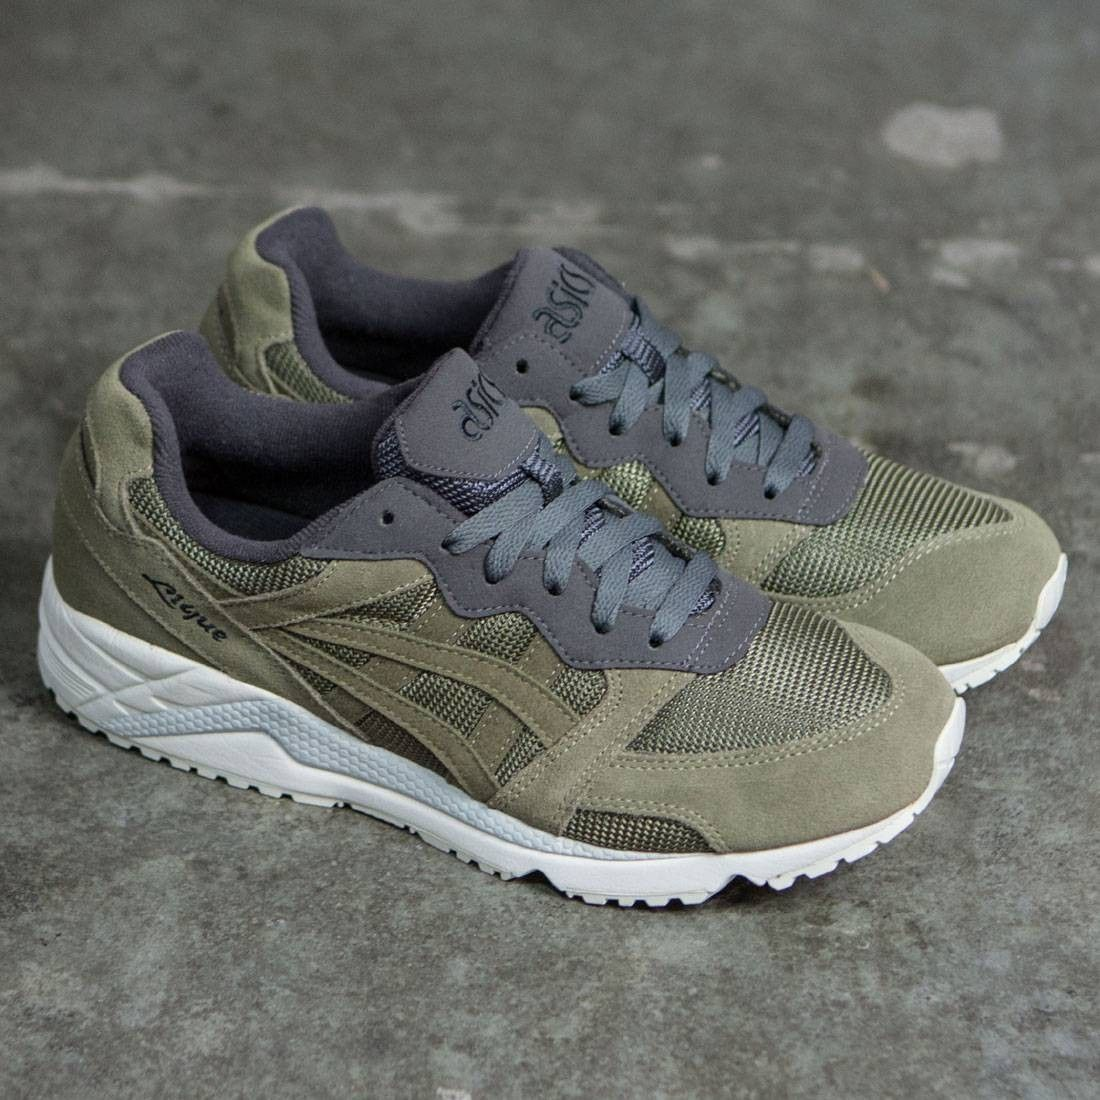 Asics Tiger Men GelLique olive   light olive